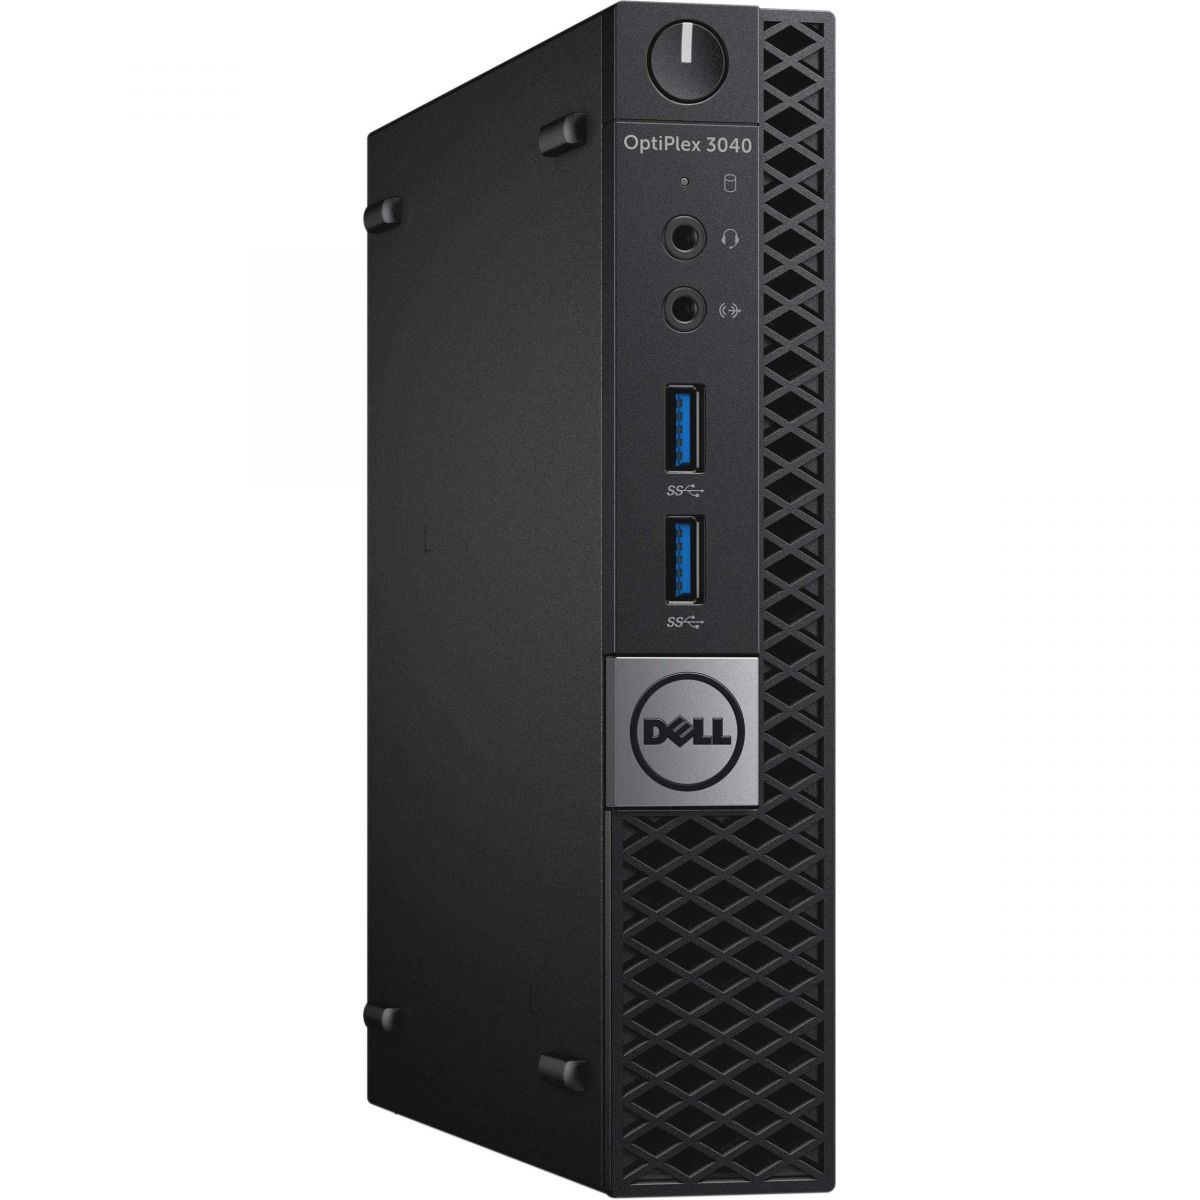 CPU DELL OPTIPLEX 3040 I5-6500T/8GB/500GB/BLUETOOTH/WIN10PRO